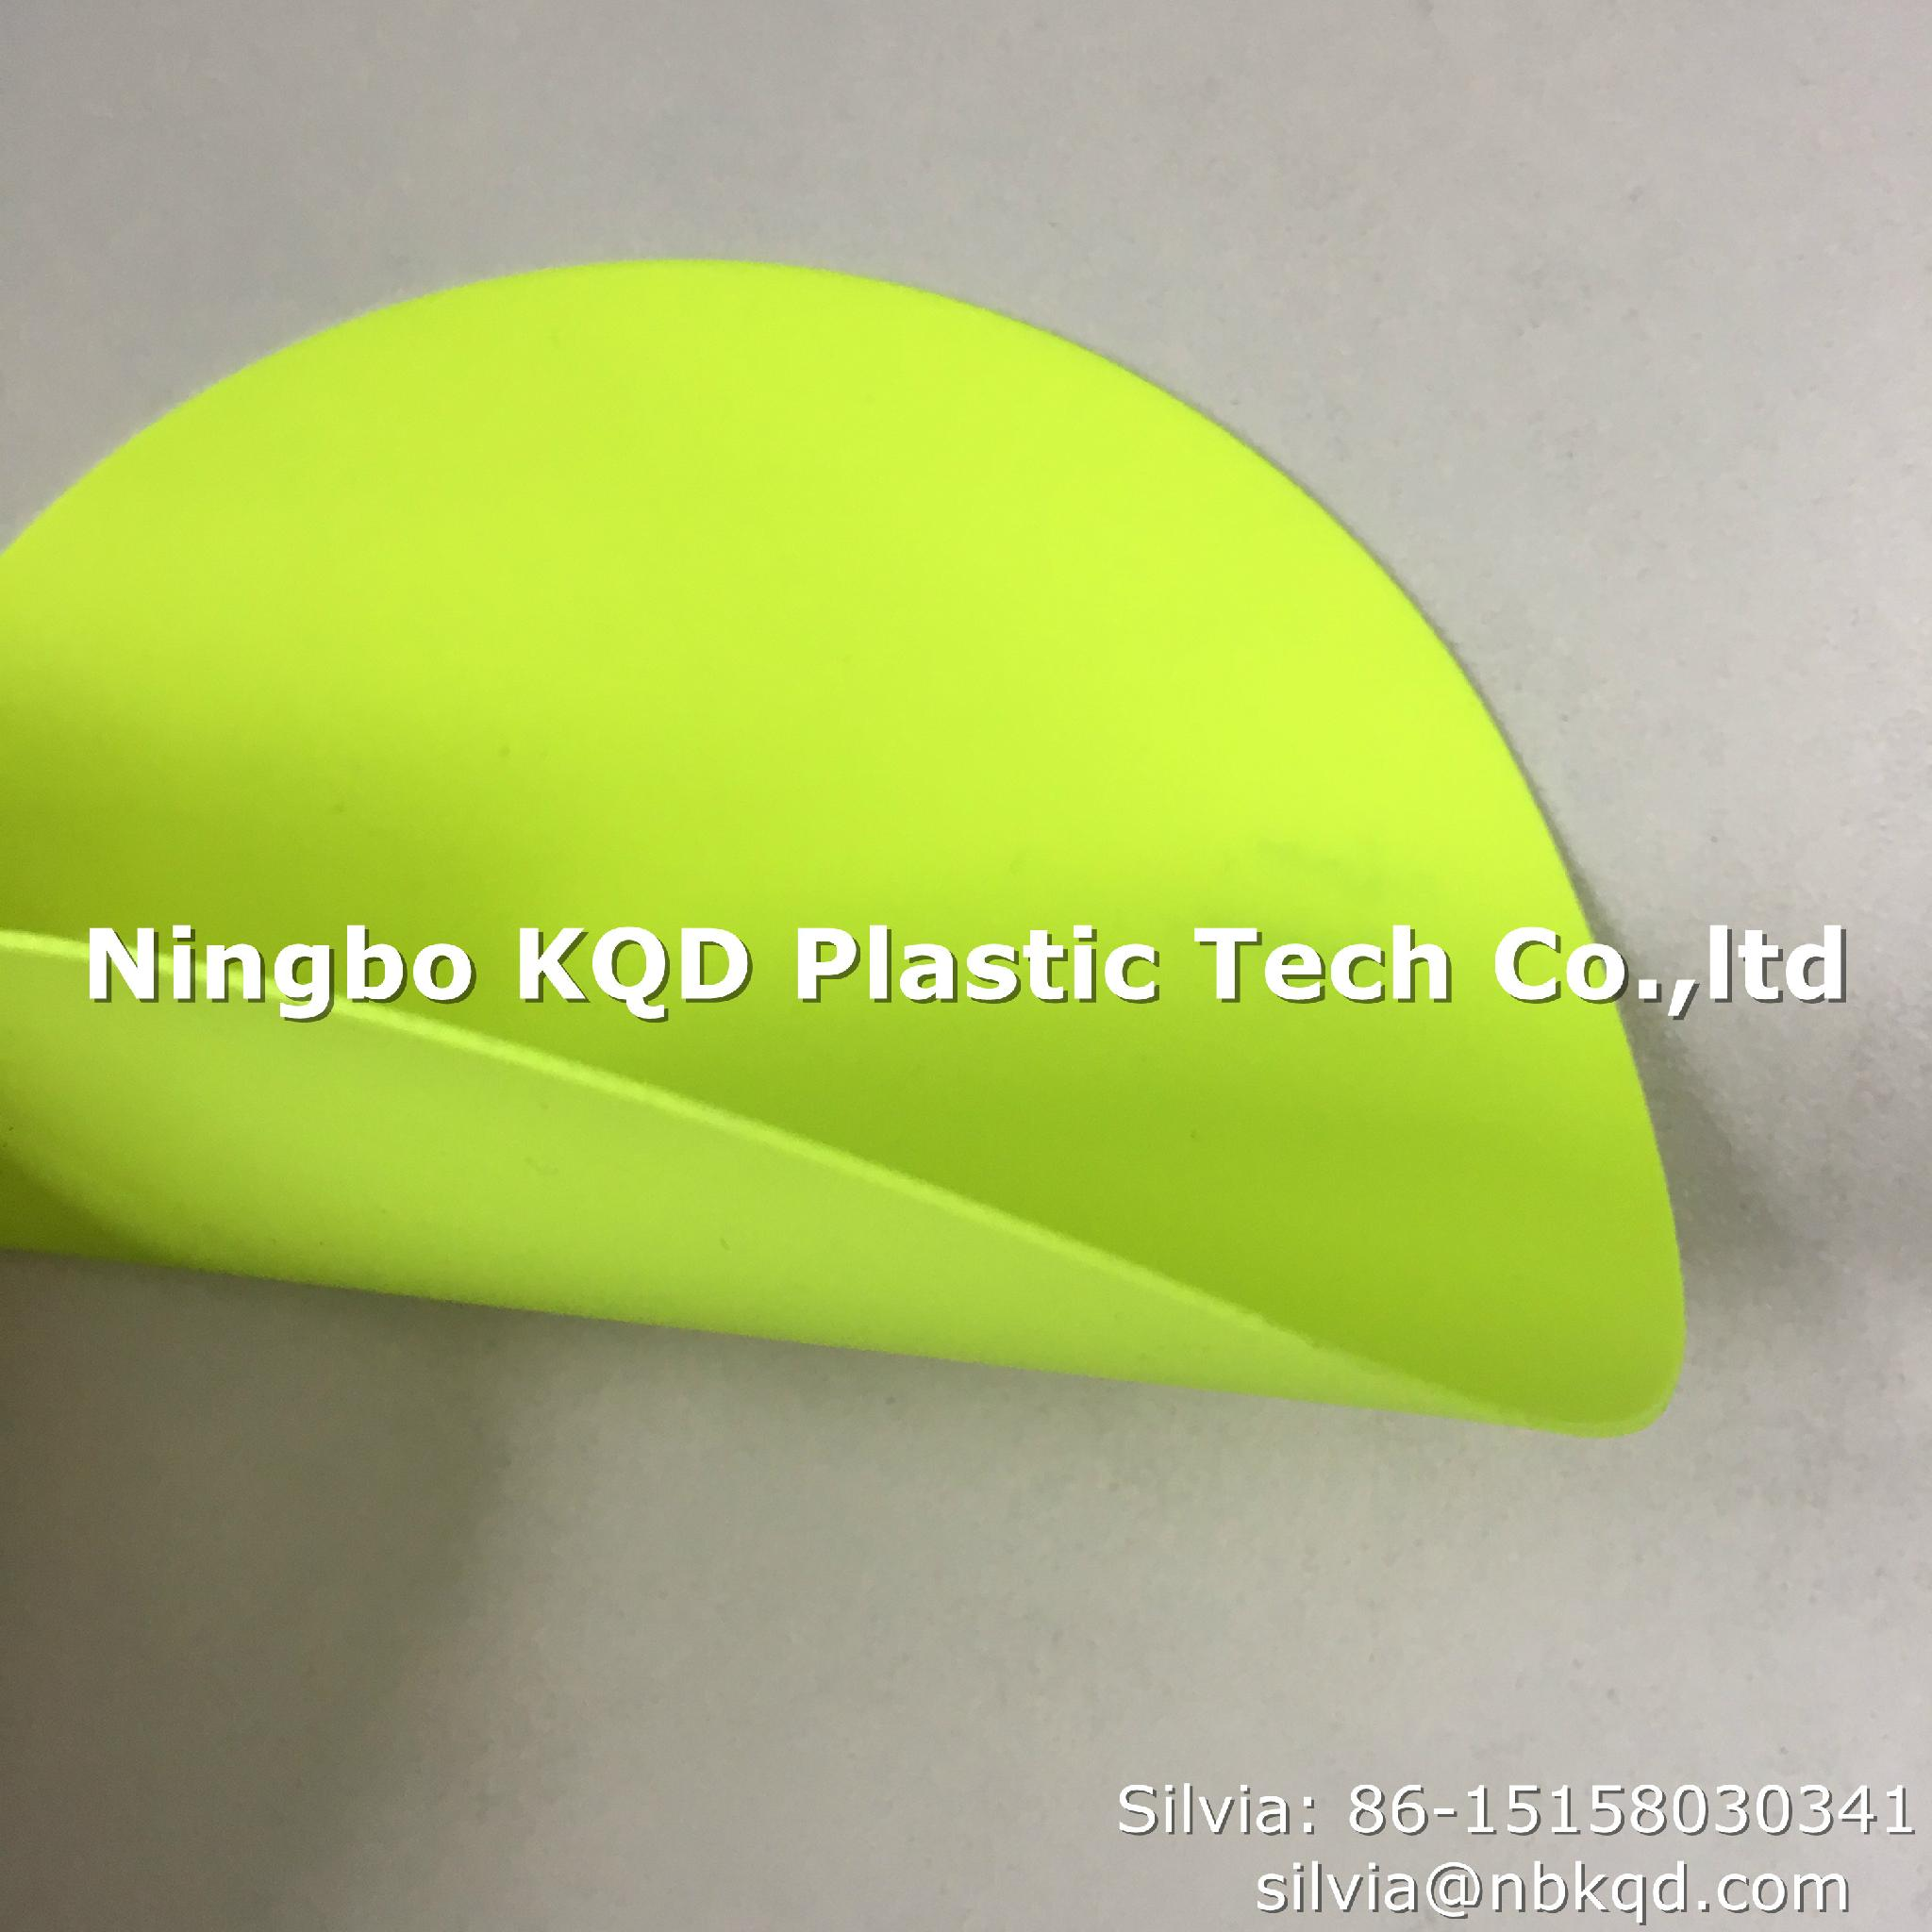 Flame Retardant Fluorescent PVC Coated Fabric for Chemical Protective Clothing  1